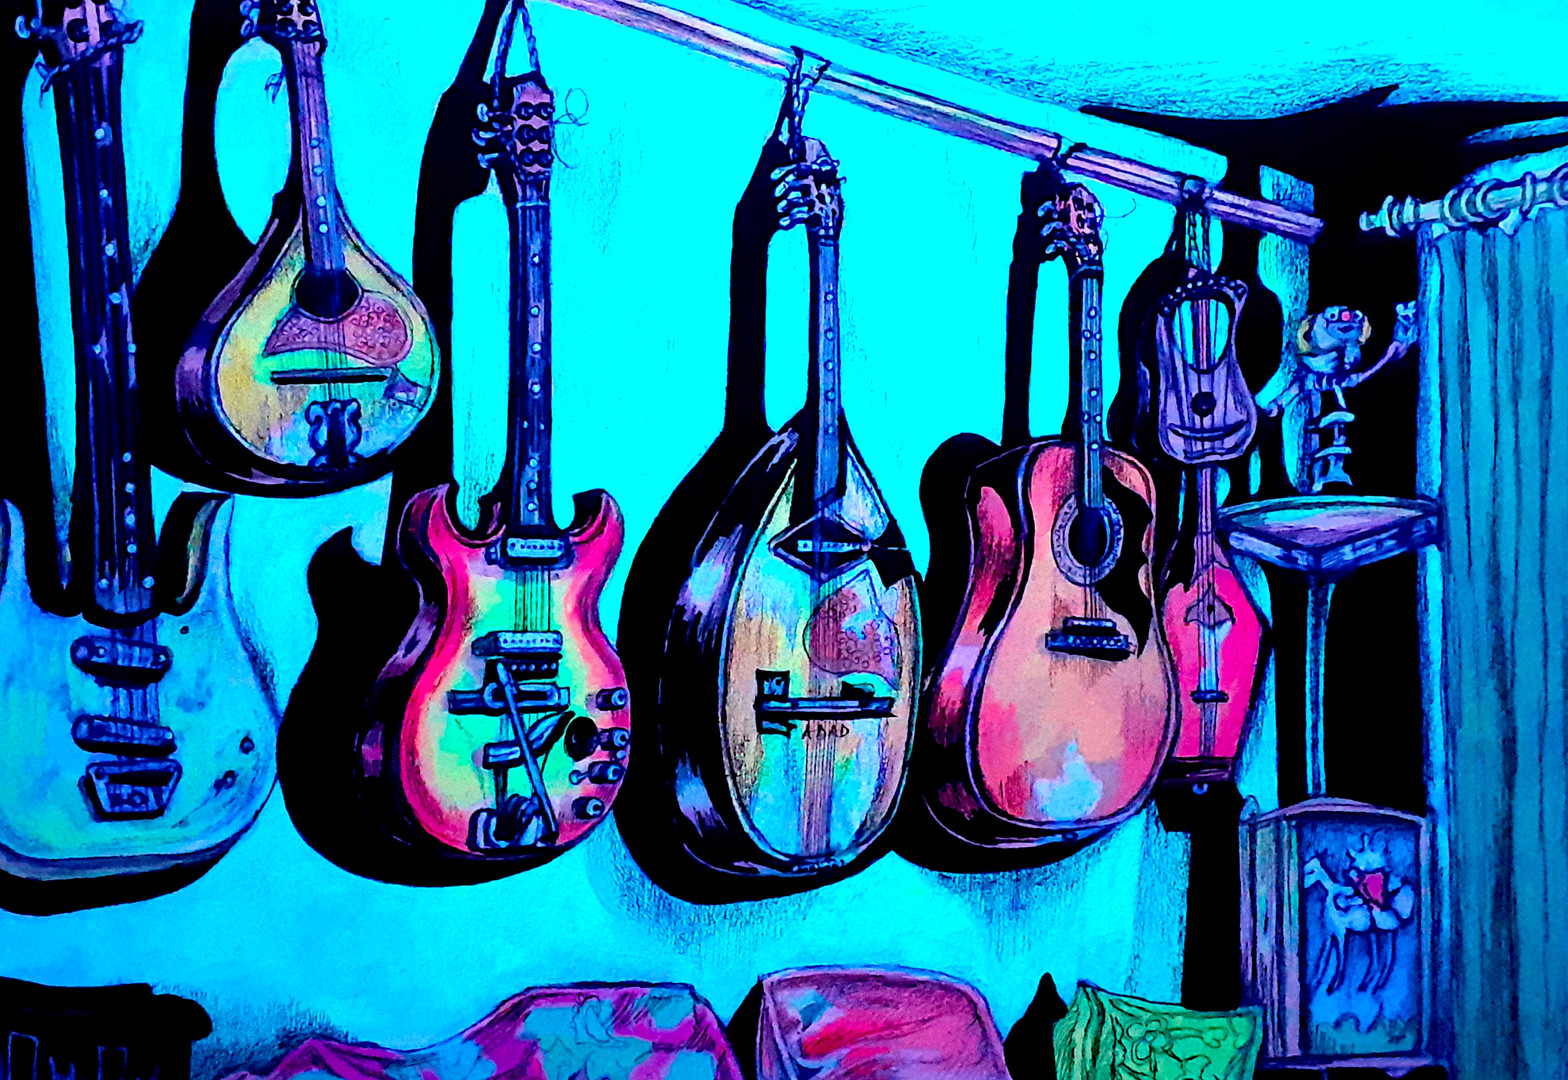 Guitar Wall UV